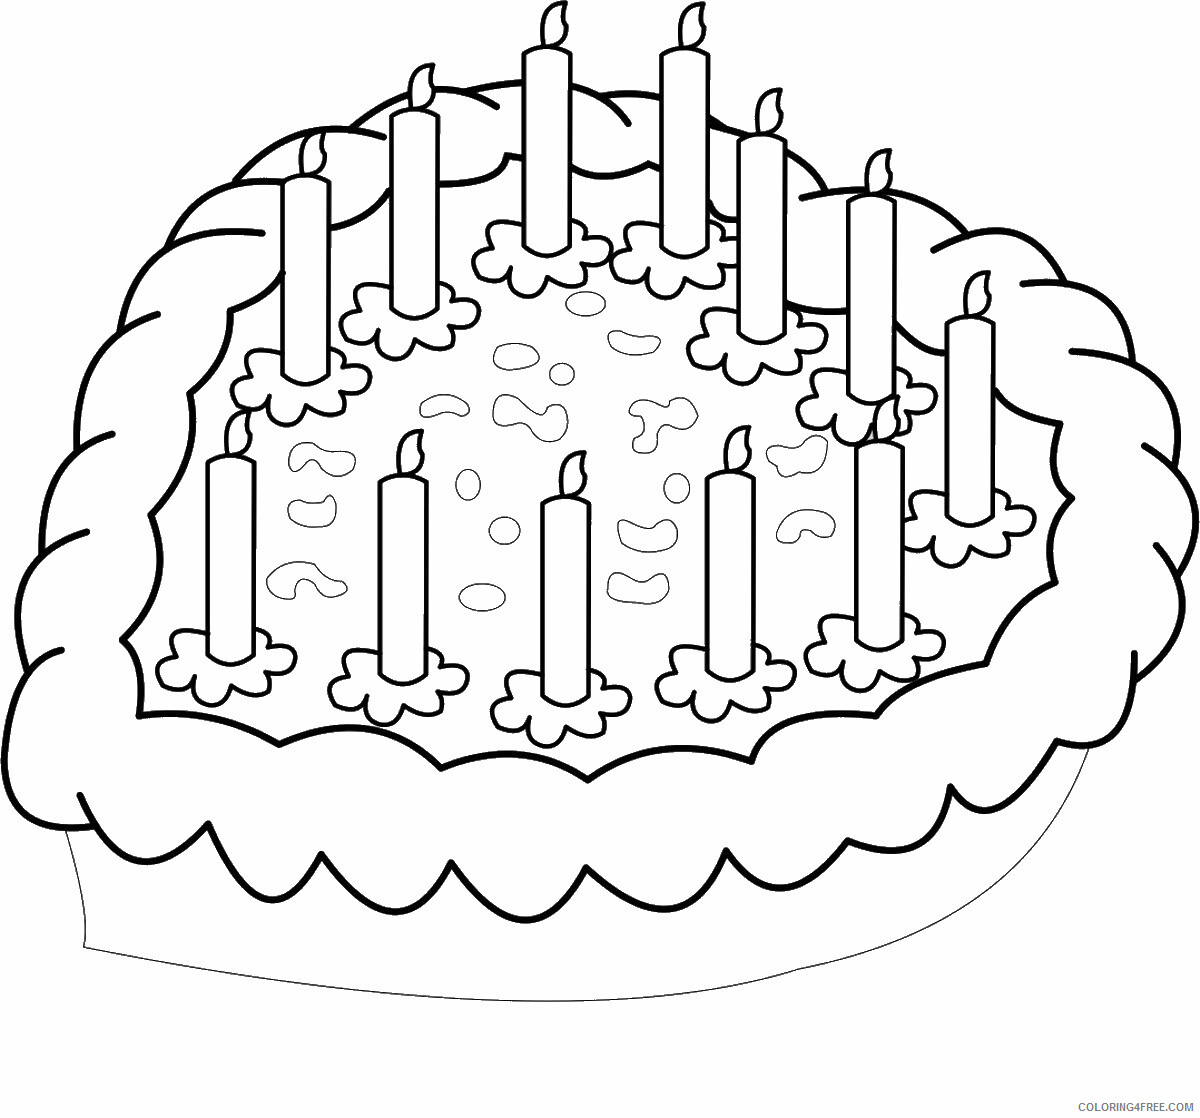 Birthday Coloring Pages Holiday birthday_cl_166 Printable 2021 0006 Coloring4free